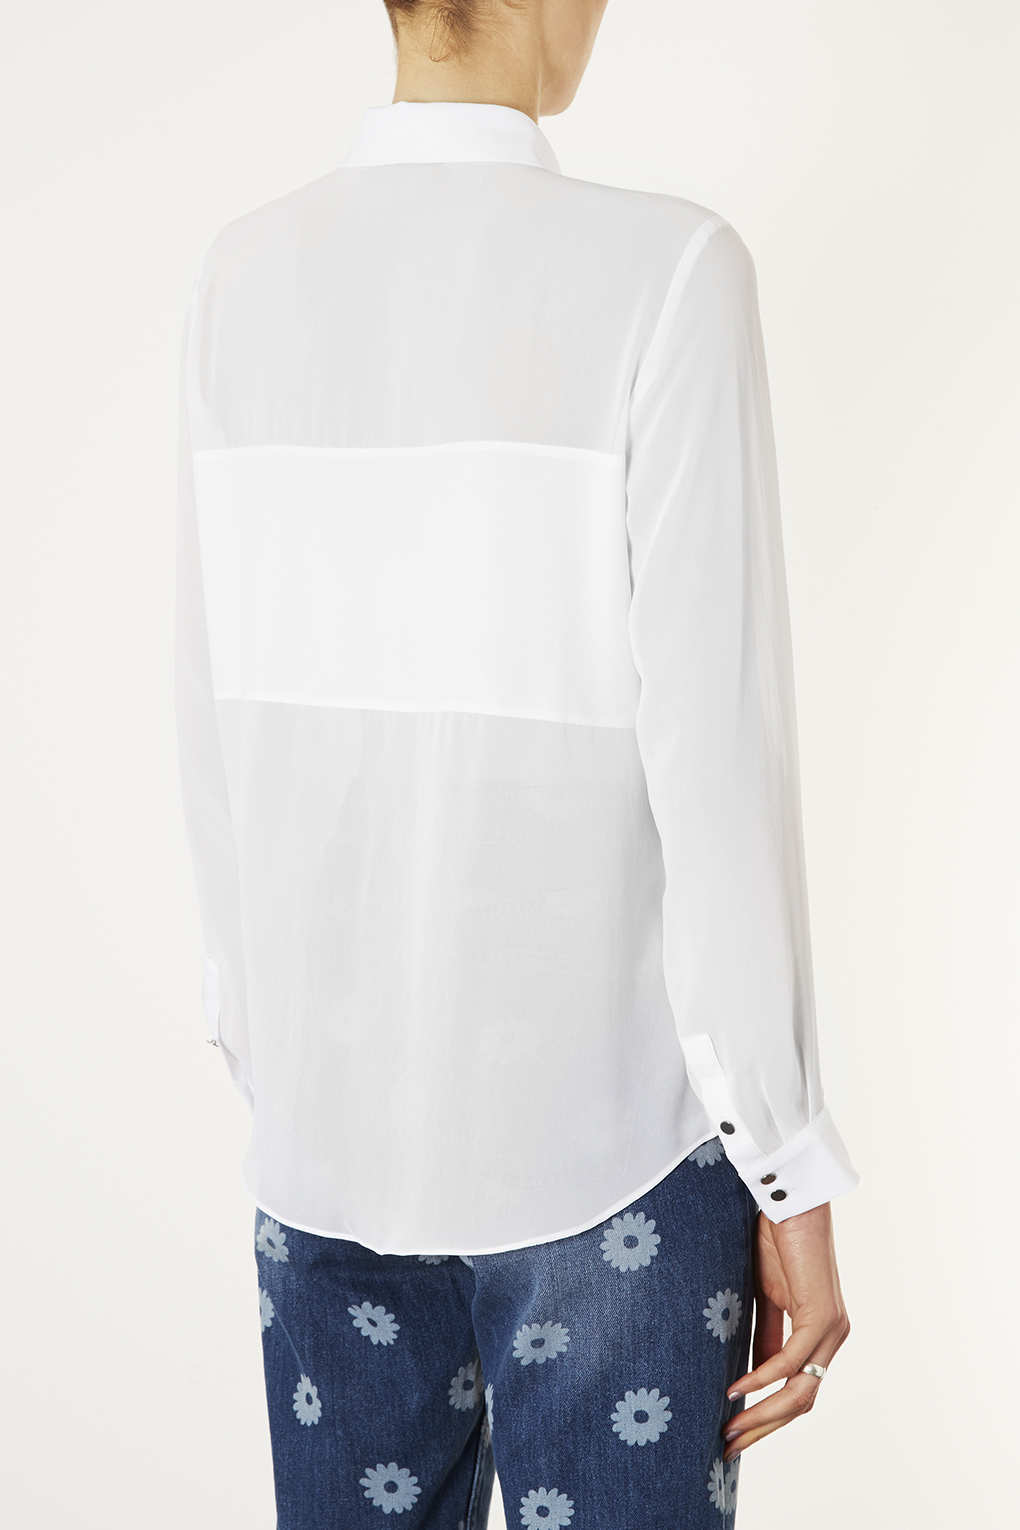 TOPSHOP Long Sleeve Panel Shirt in White